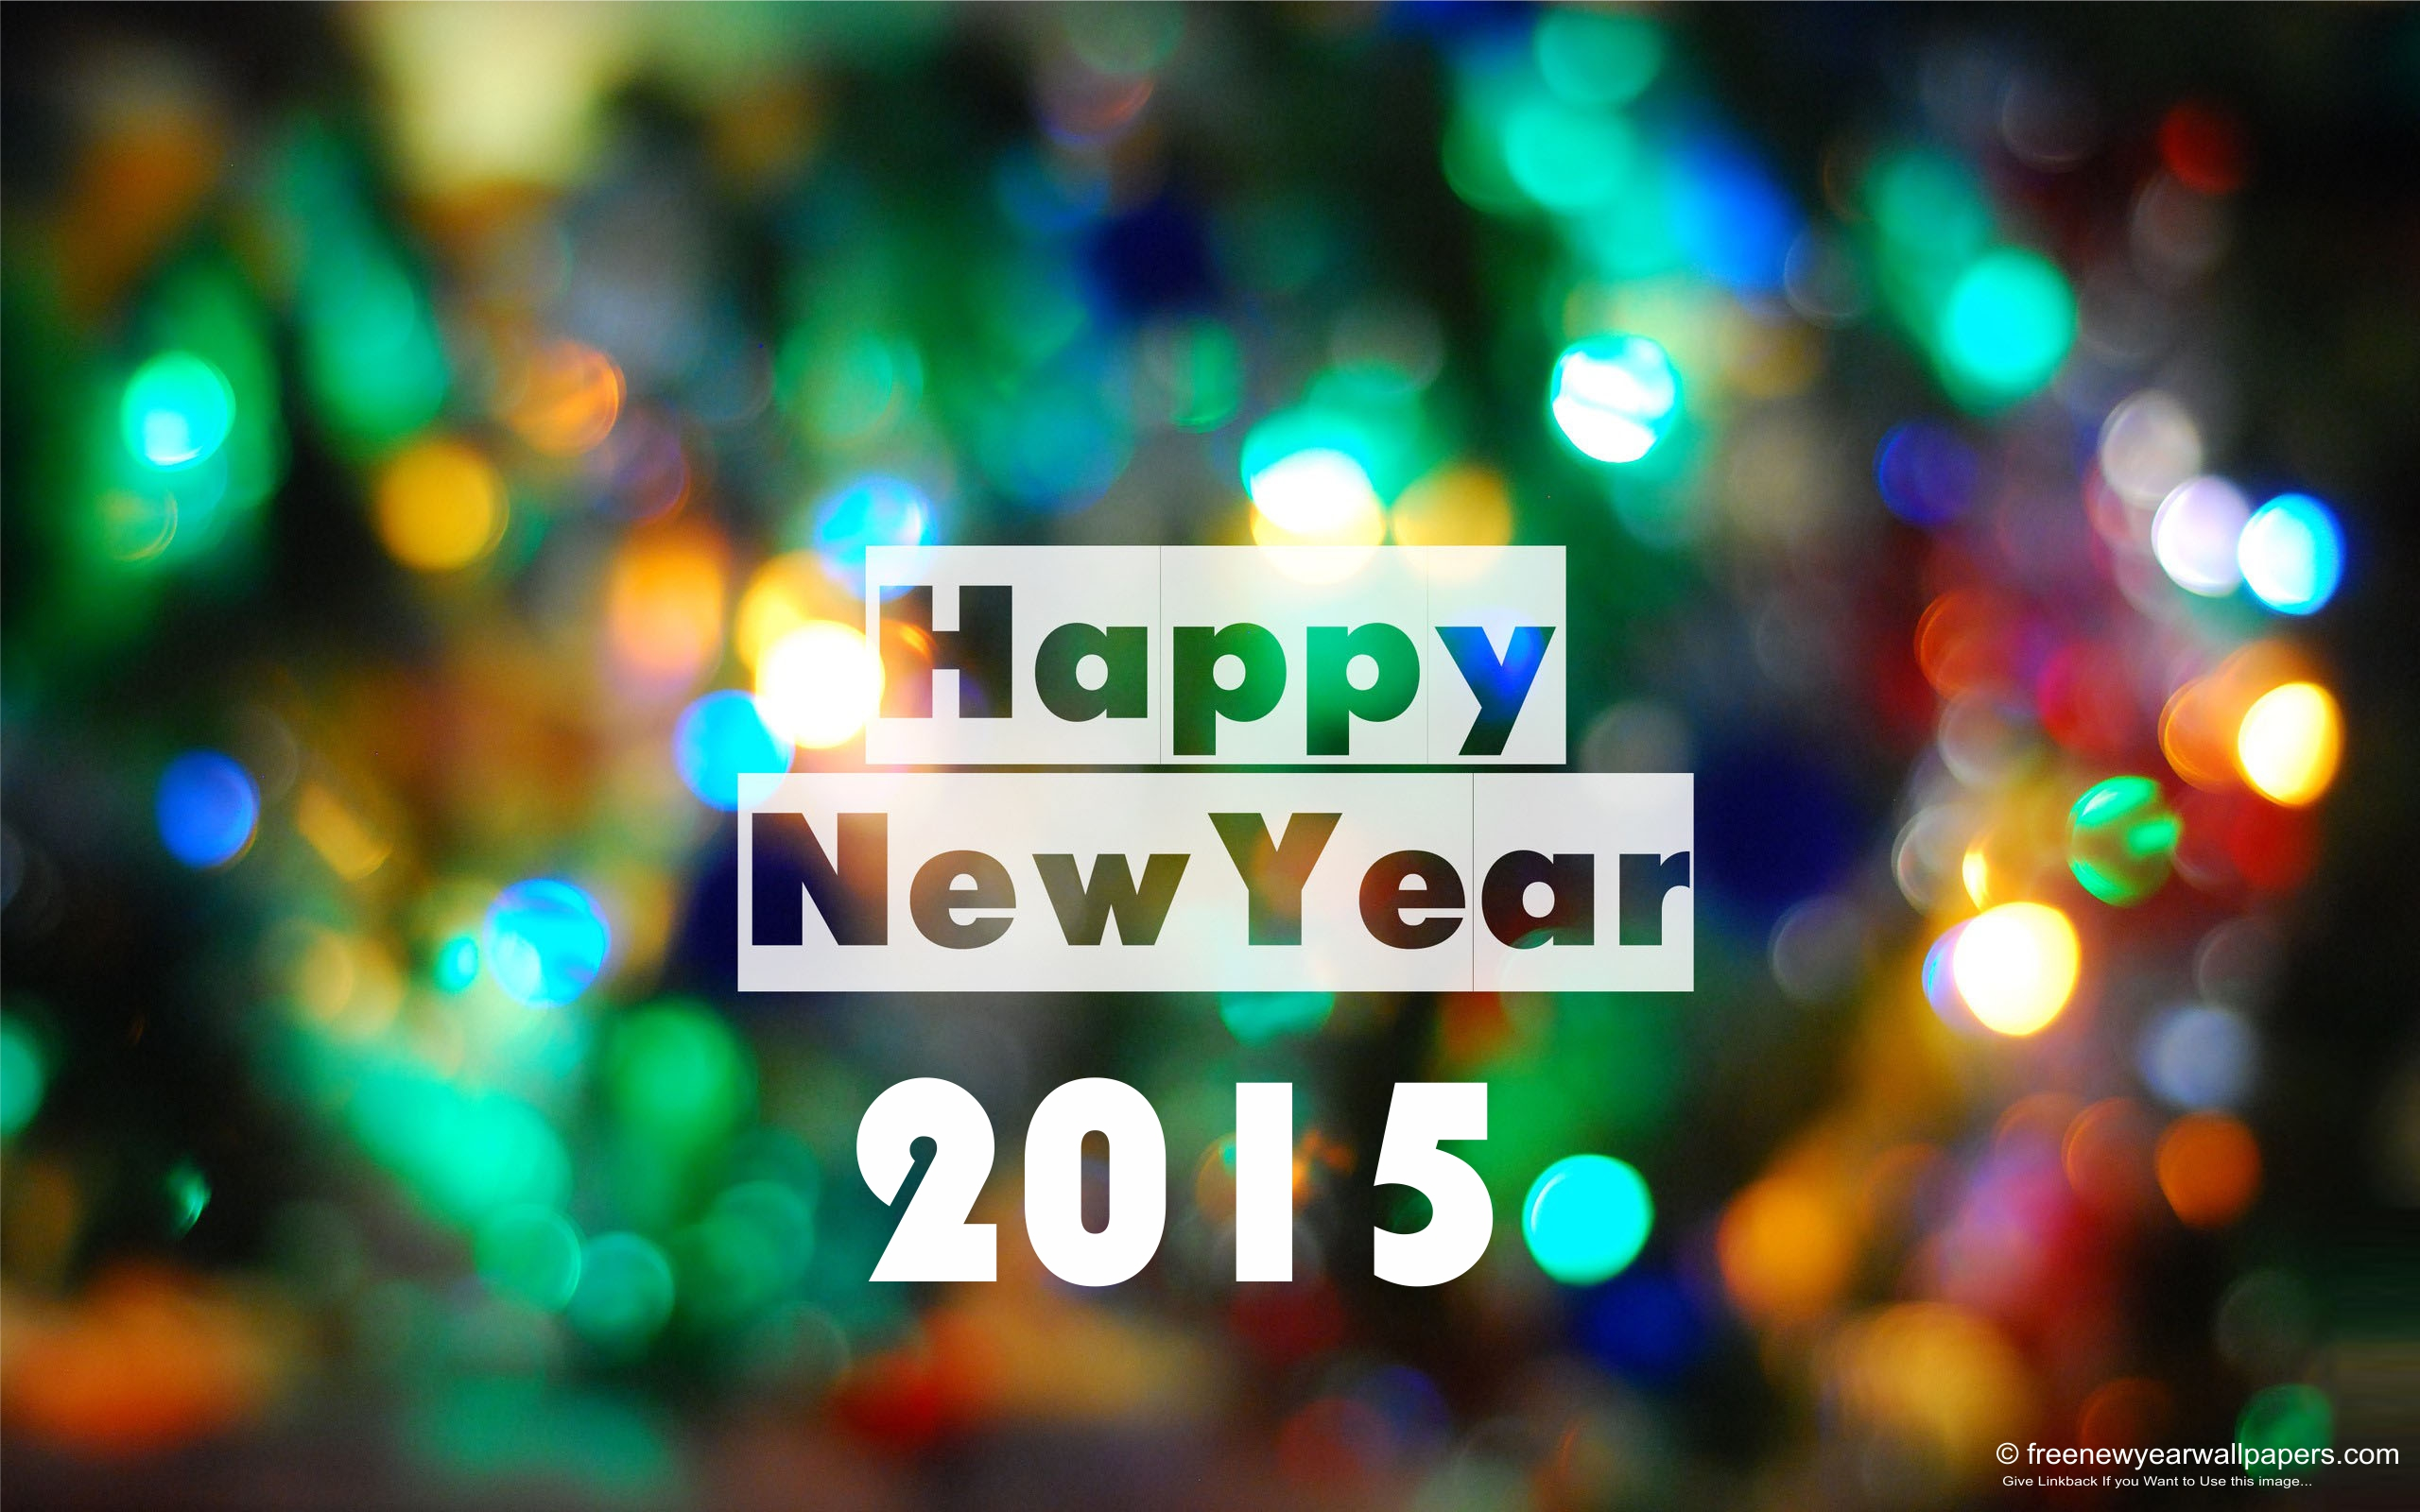 Happy New Year 2015 Wallpaper Desktop PC